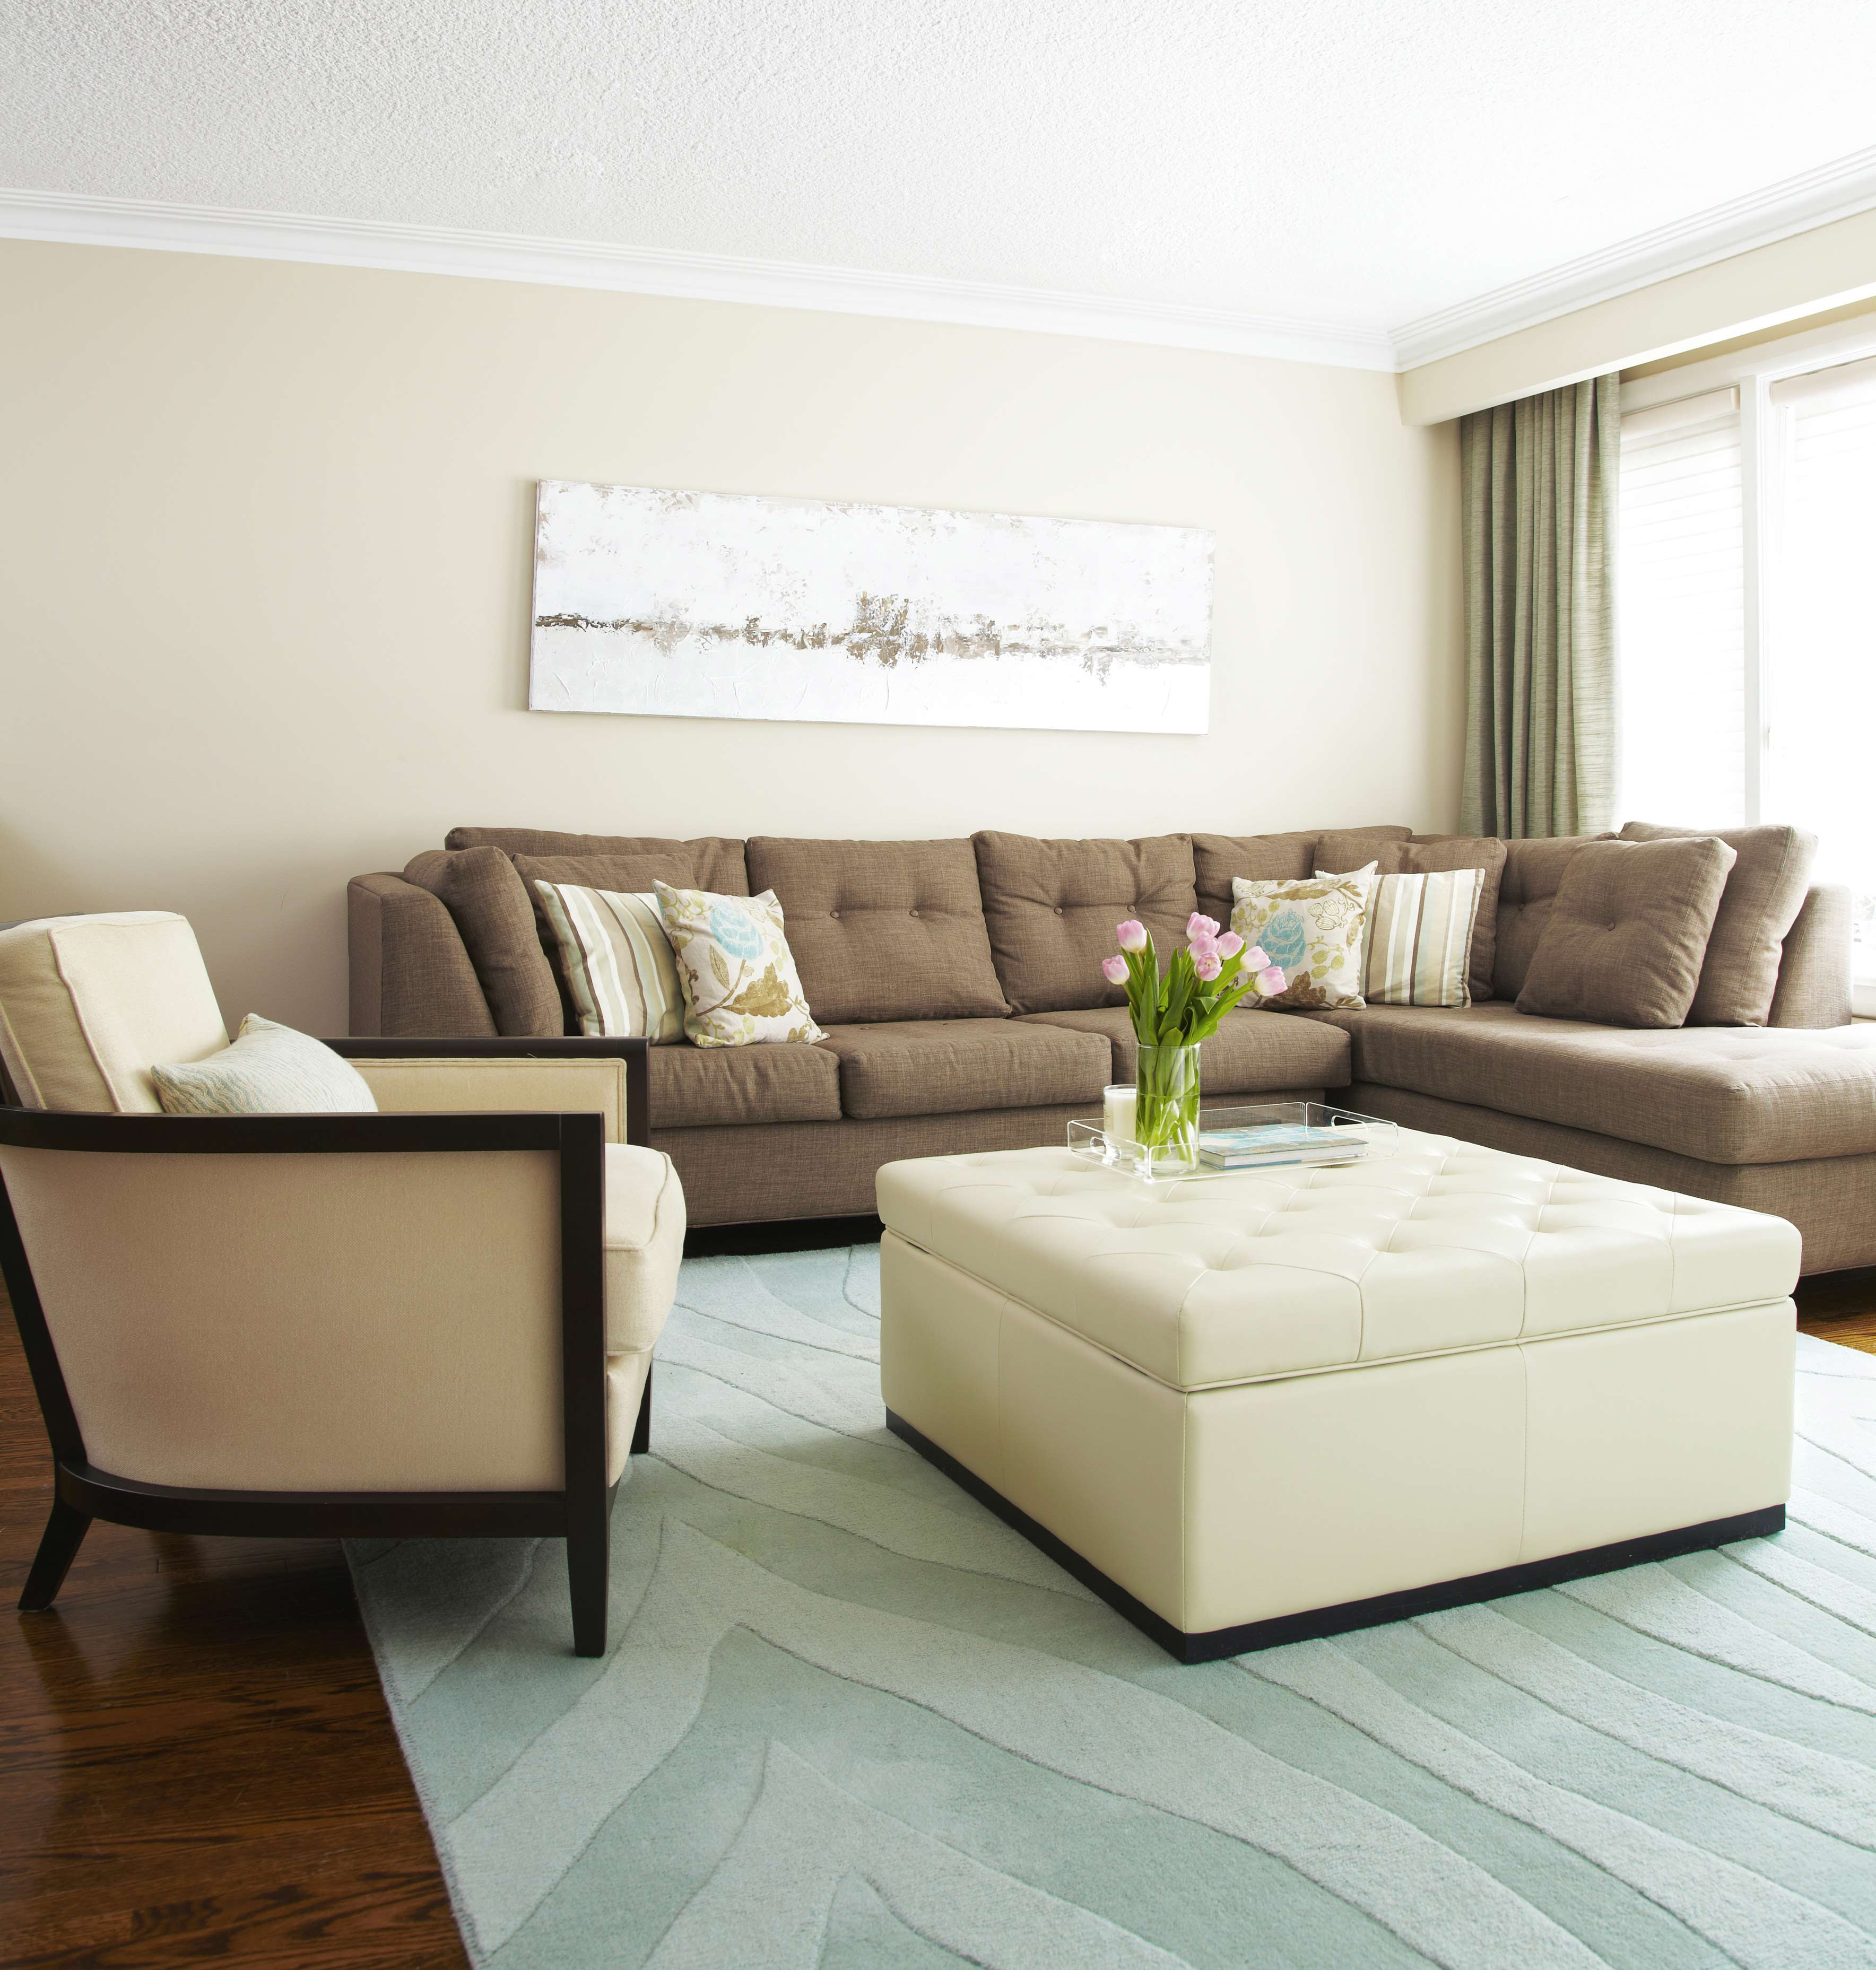 White Leather Ottoman Coffee Table Furniture | Roy Home Design